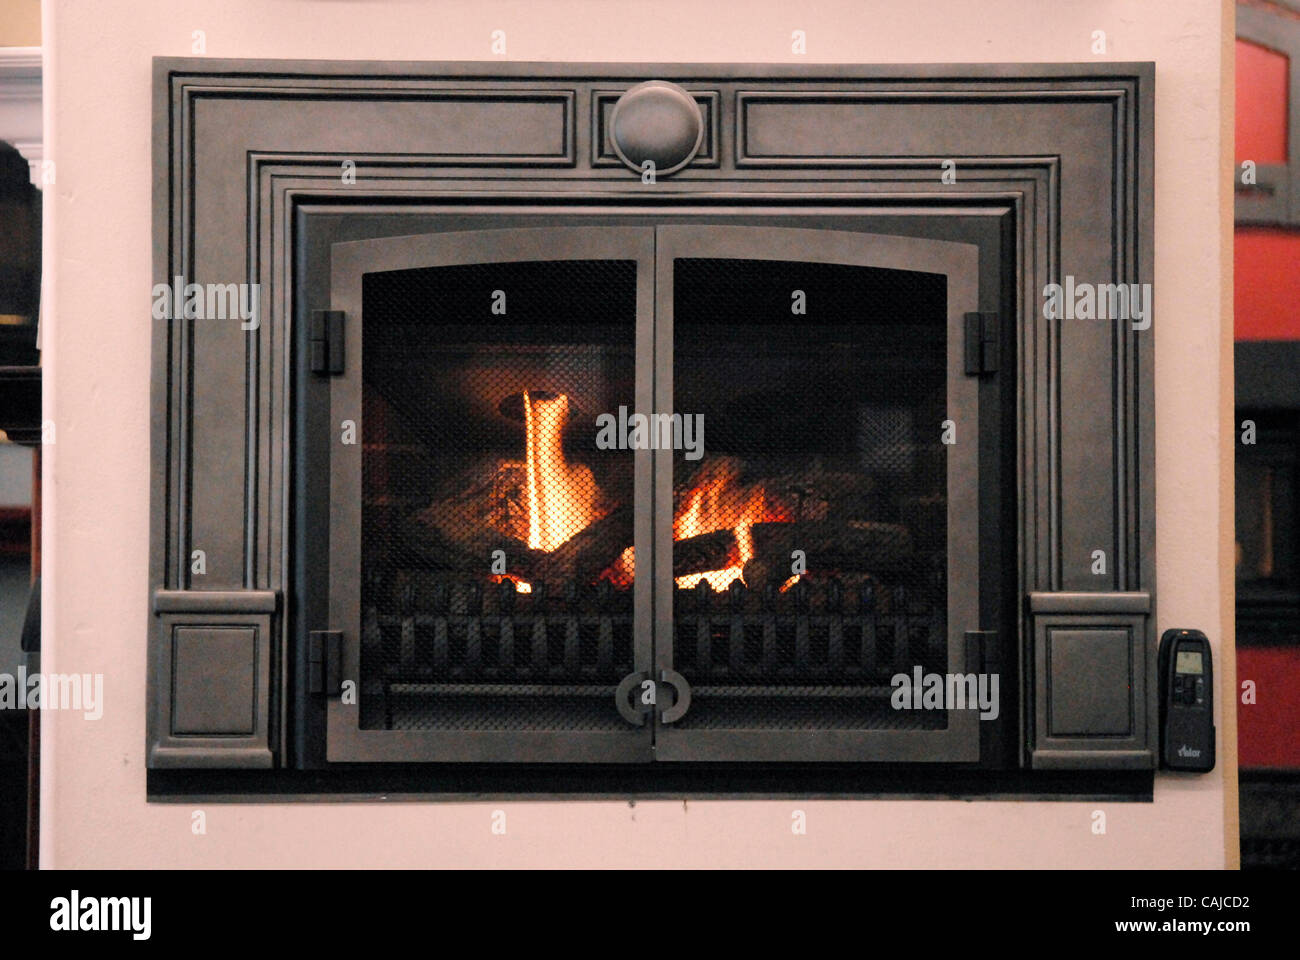 A Gas Fireplace Insert An Option For Those Who Want To Convert